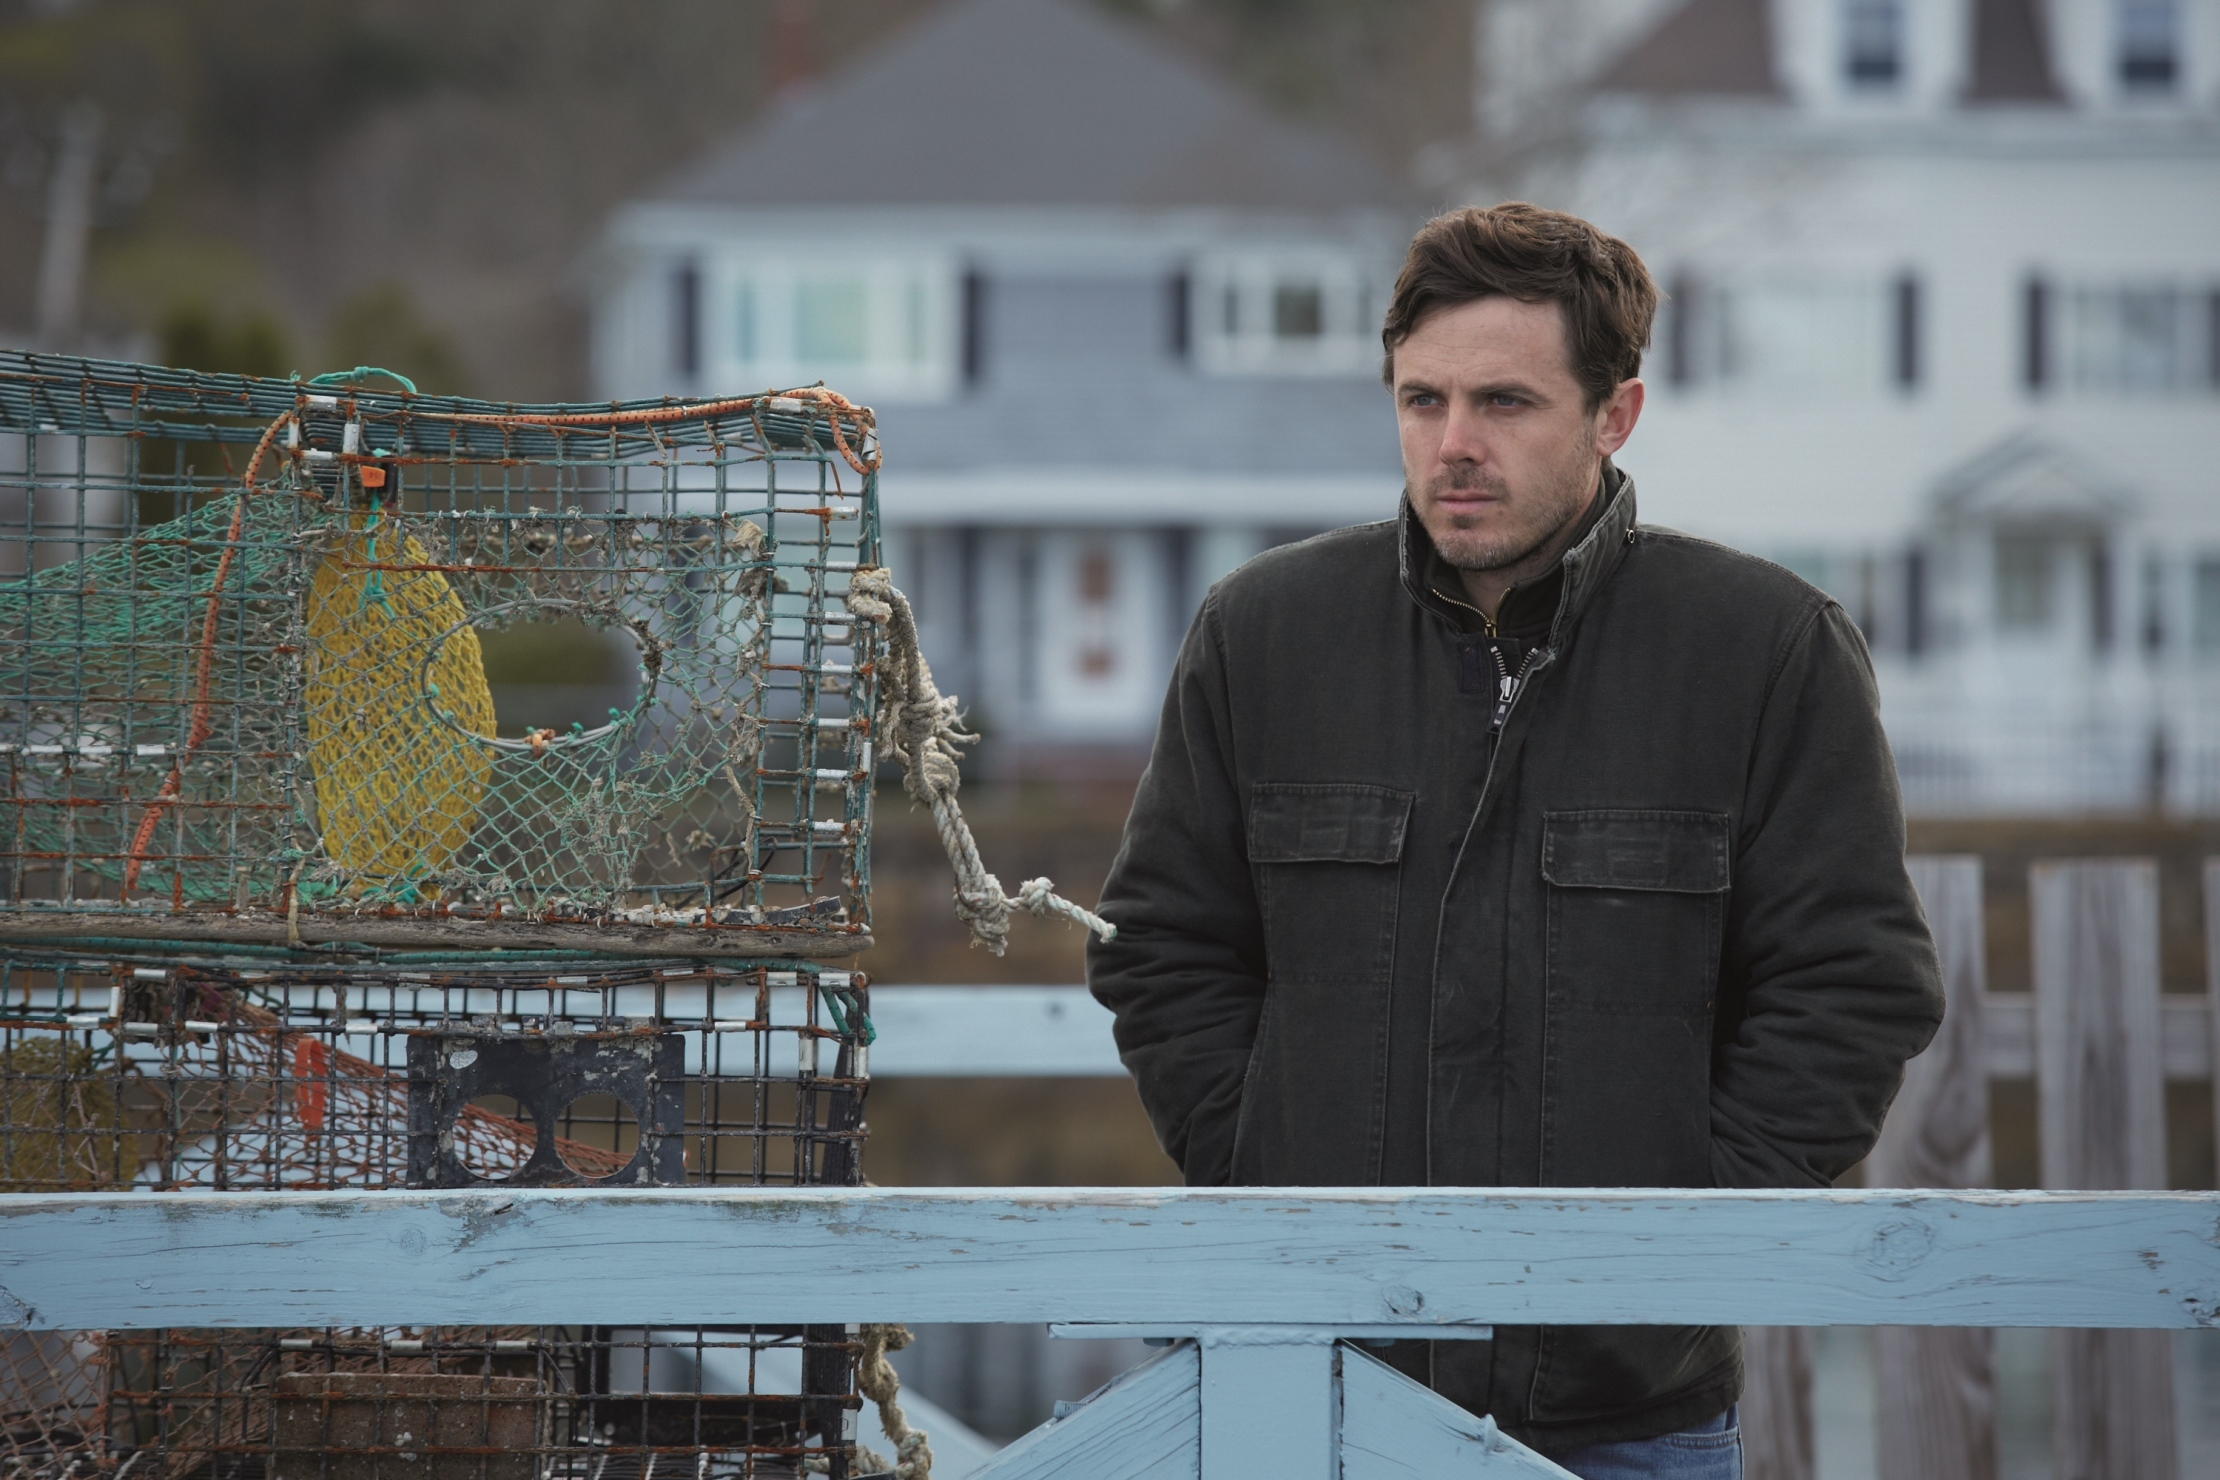 Win tickets to a preview screening of Manchester by the Sea